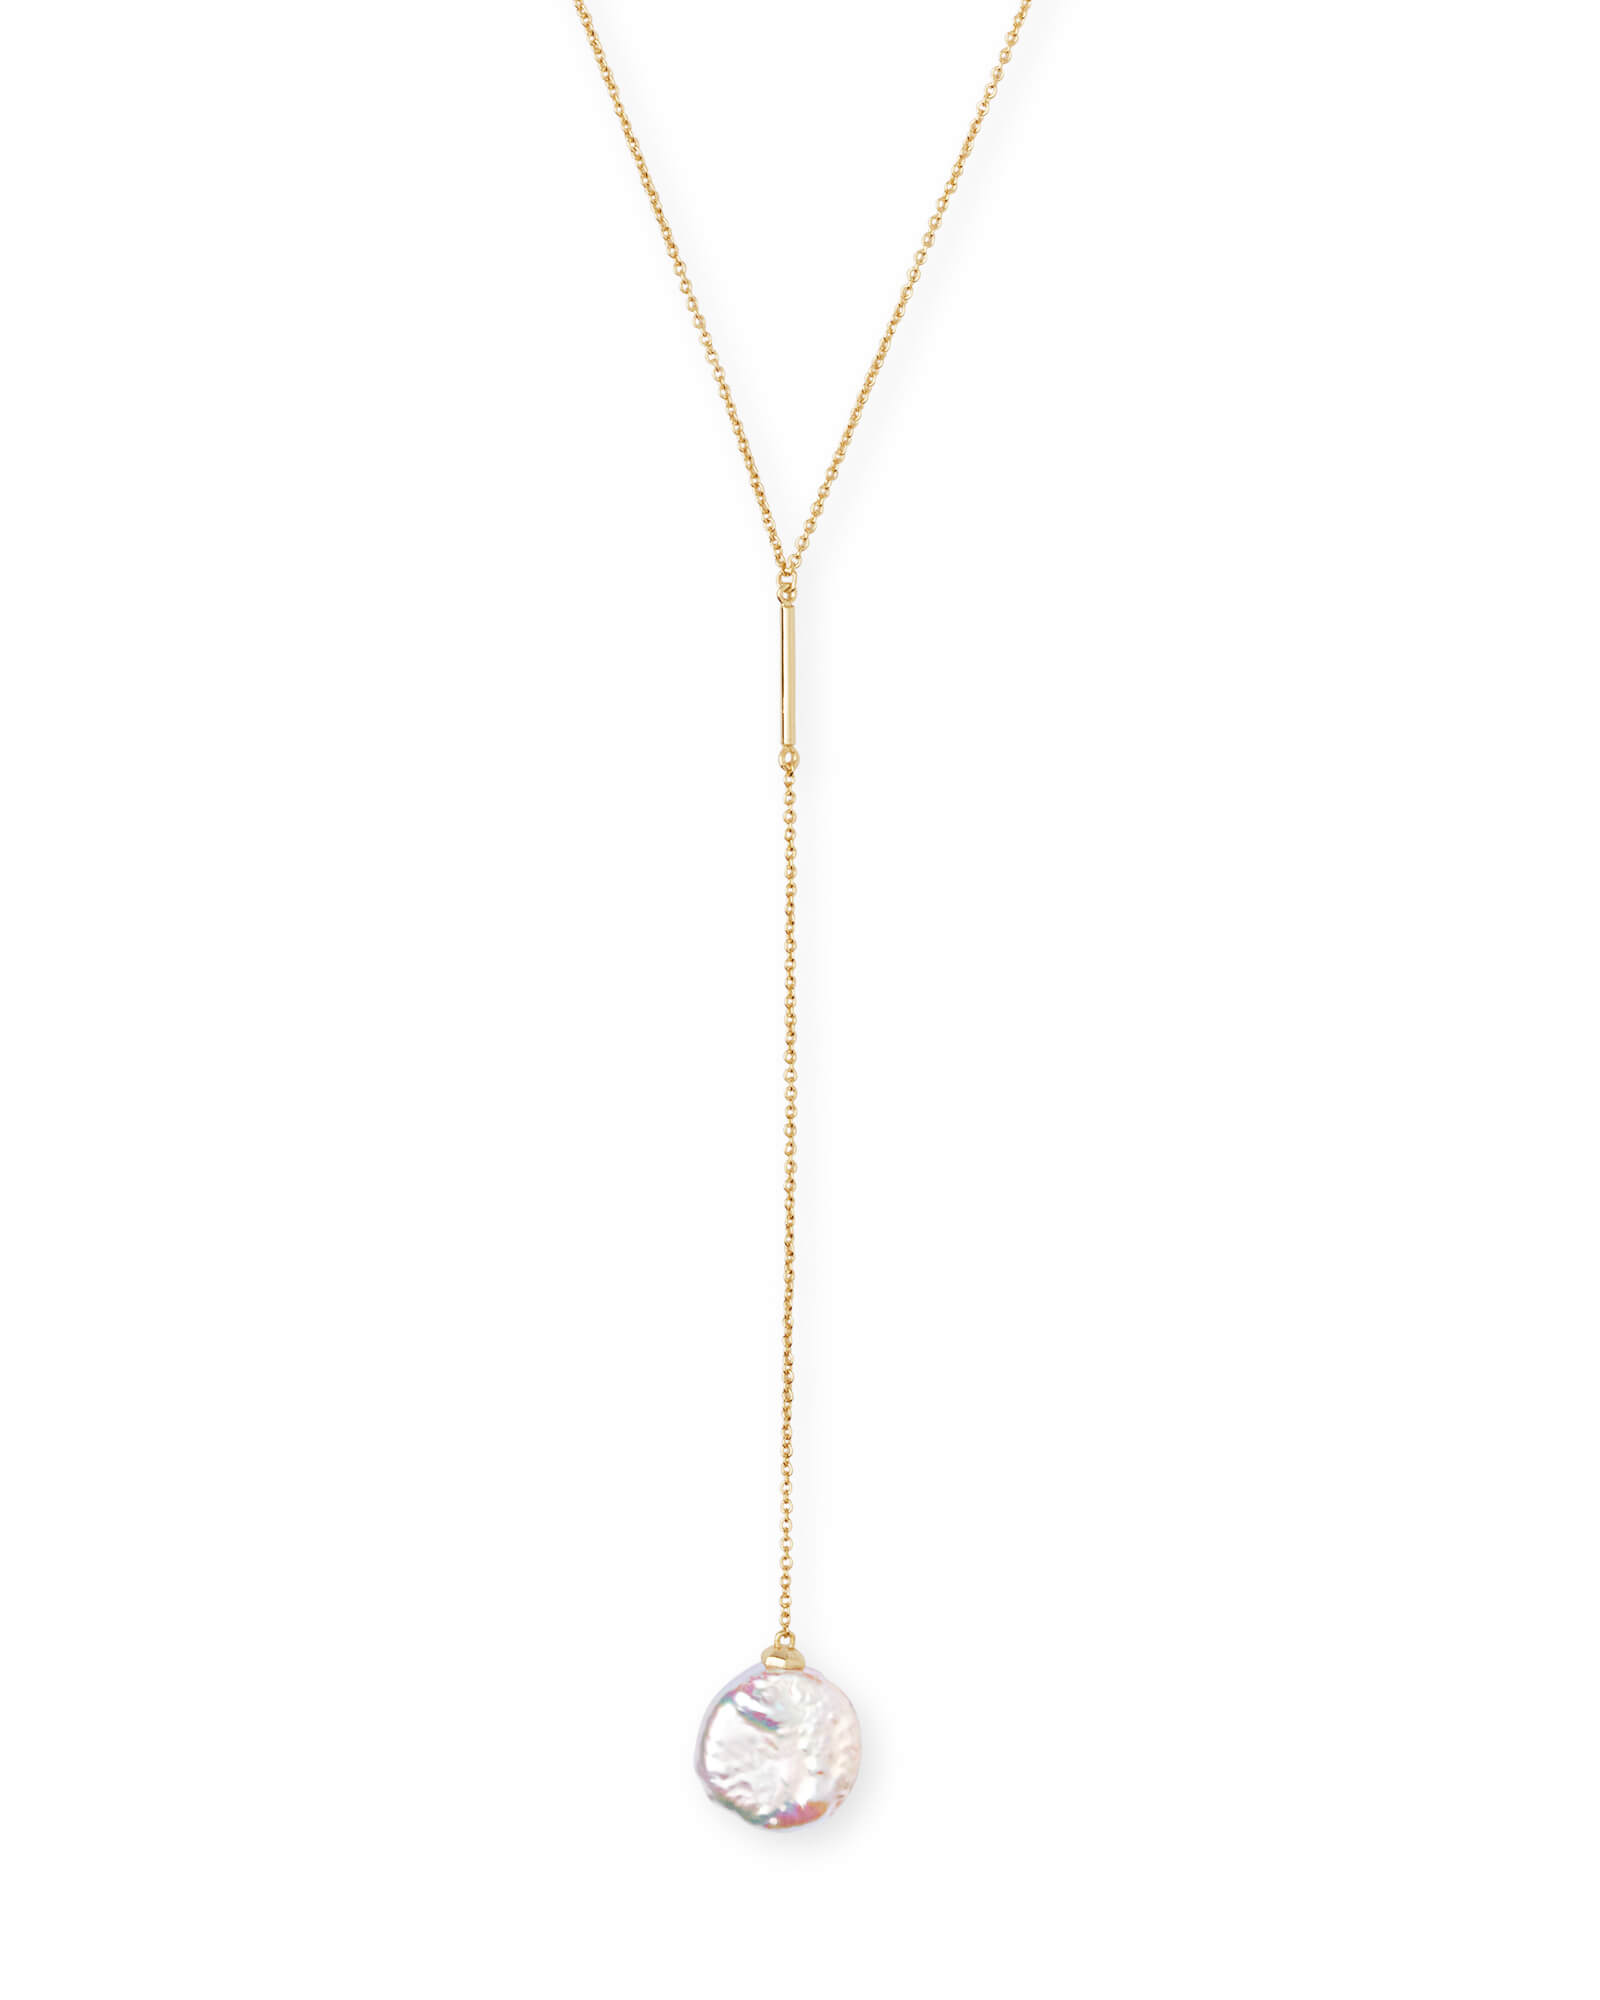 Andi Gold Y Necklace in Pearl